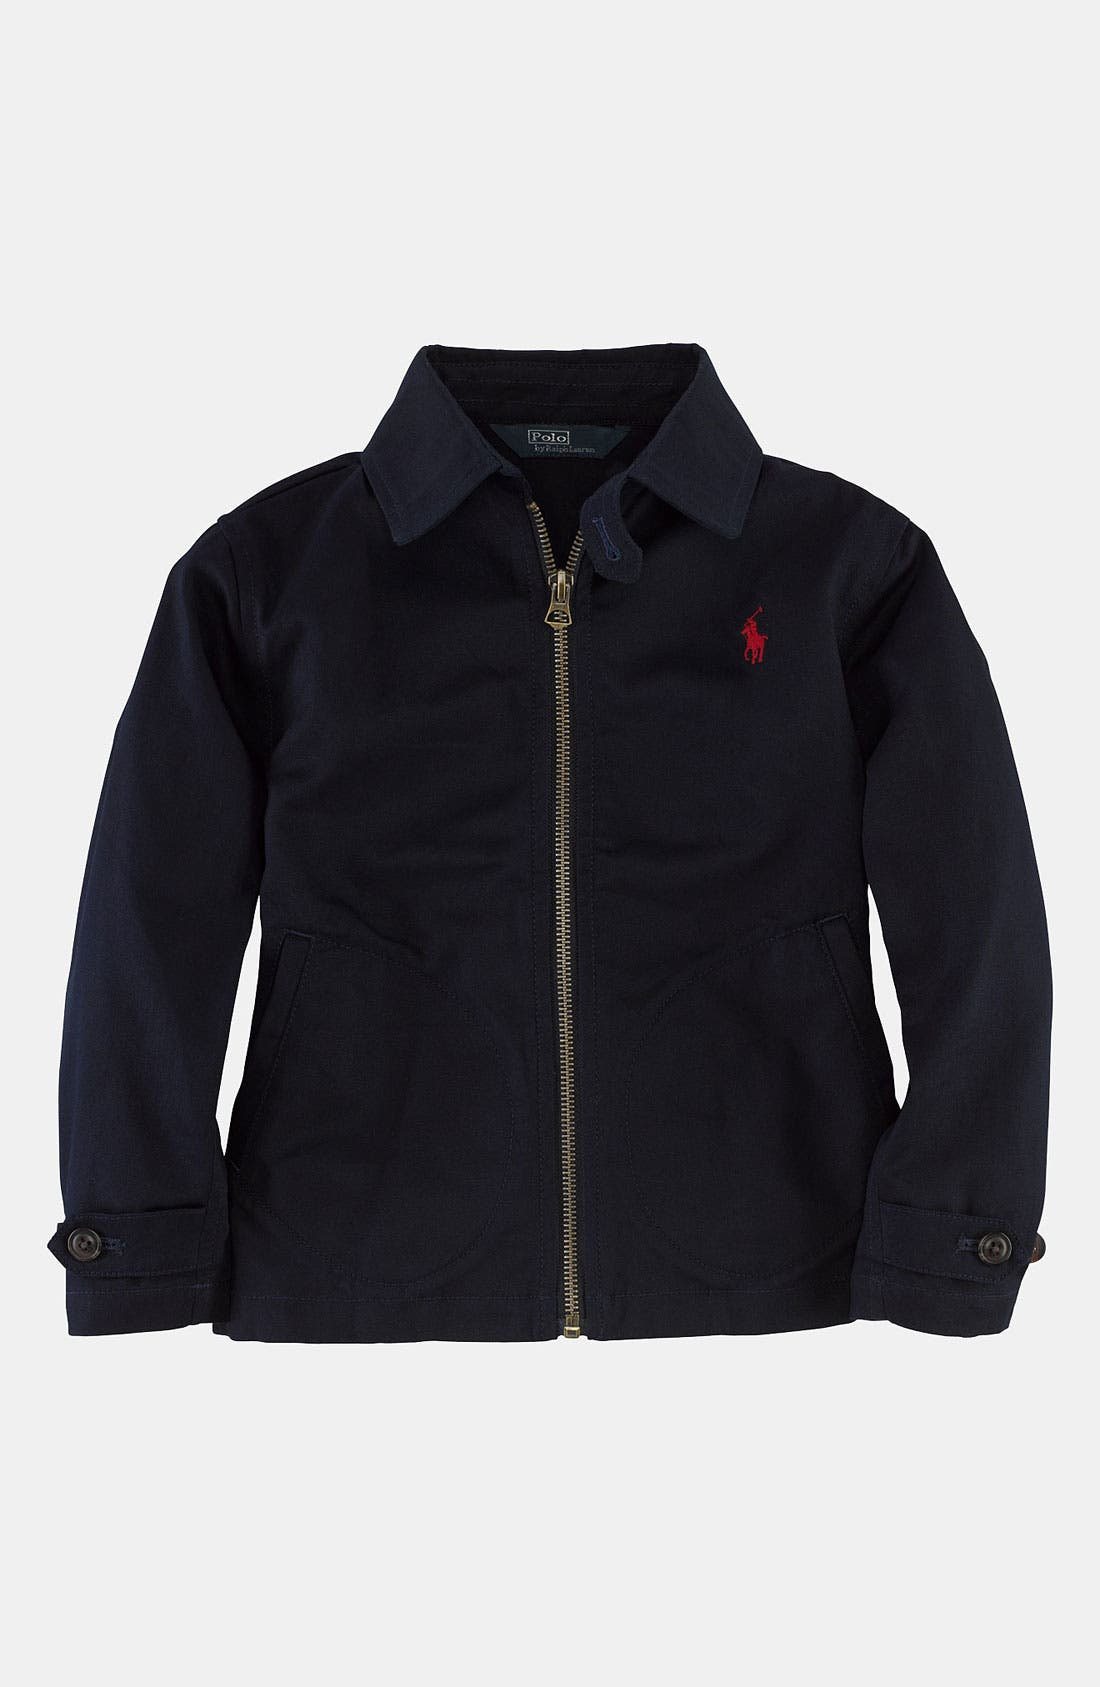 Alternate Image 1 Selected - Ralph Lauren Jacket (Toddler)